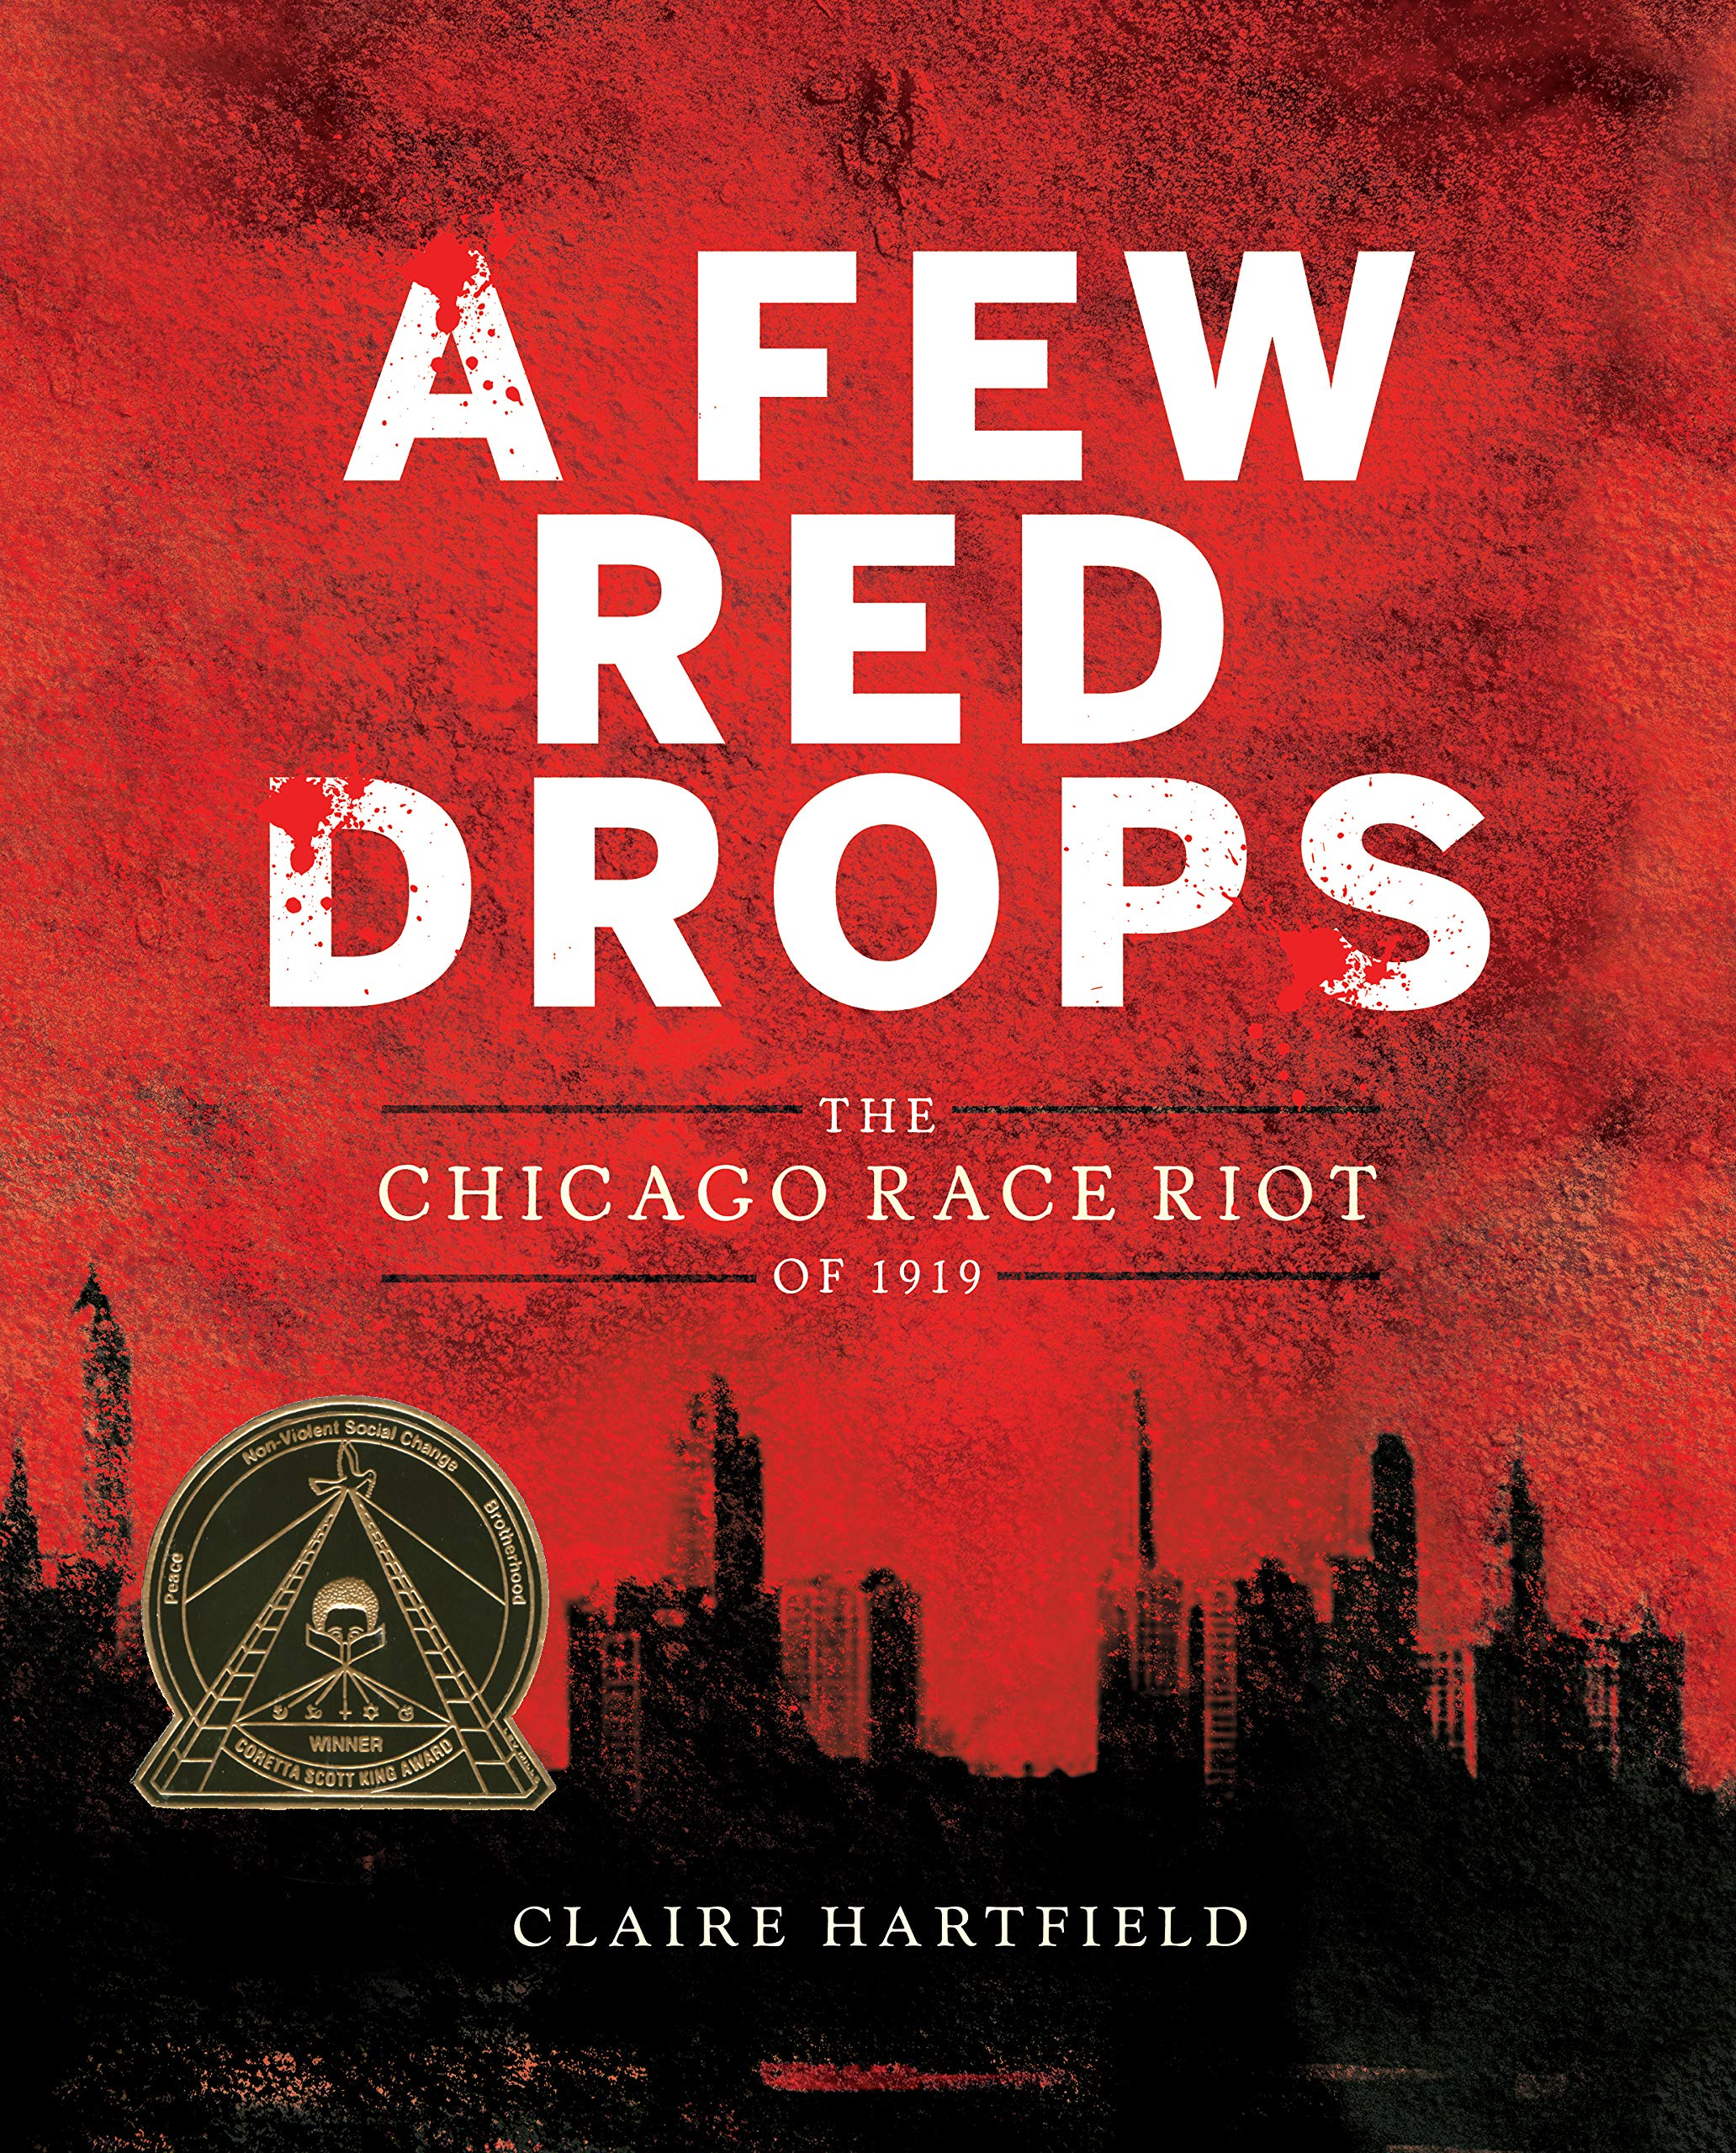 Black history books A Few Red Drops: The Chicago Race Riot of 1919